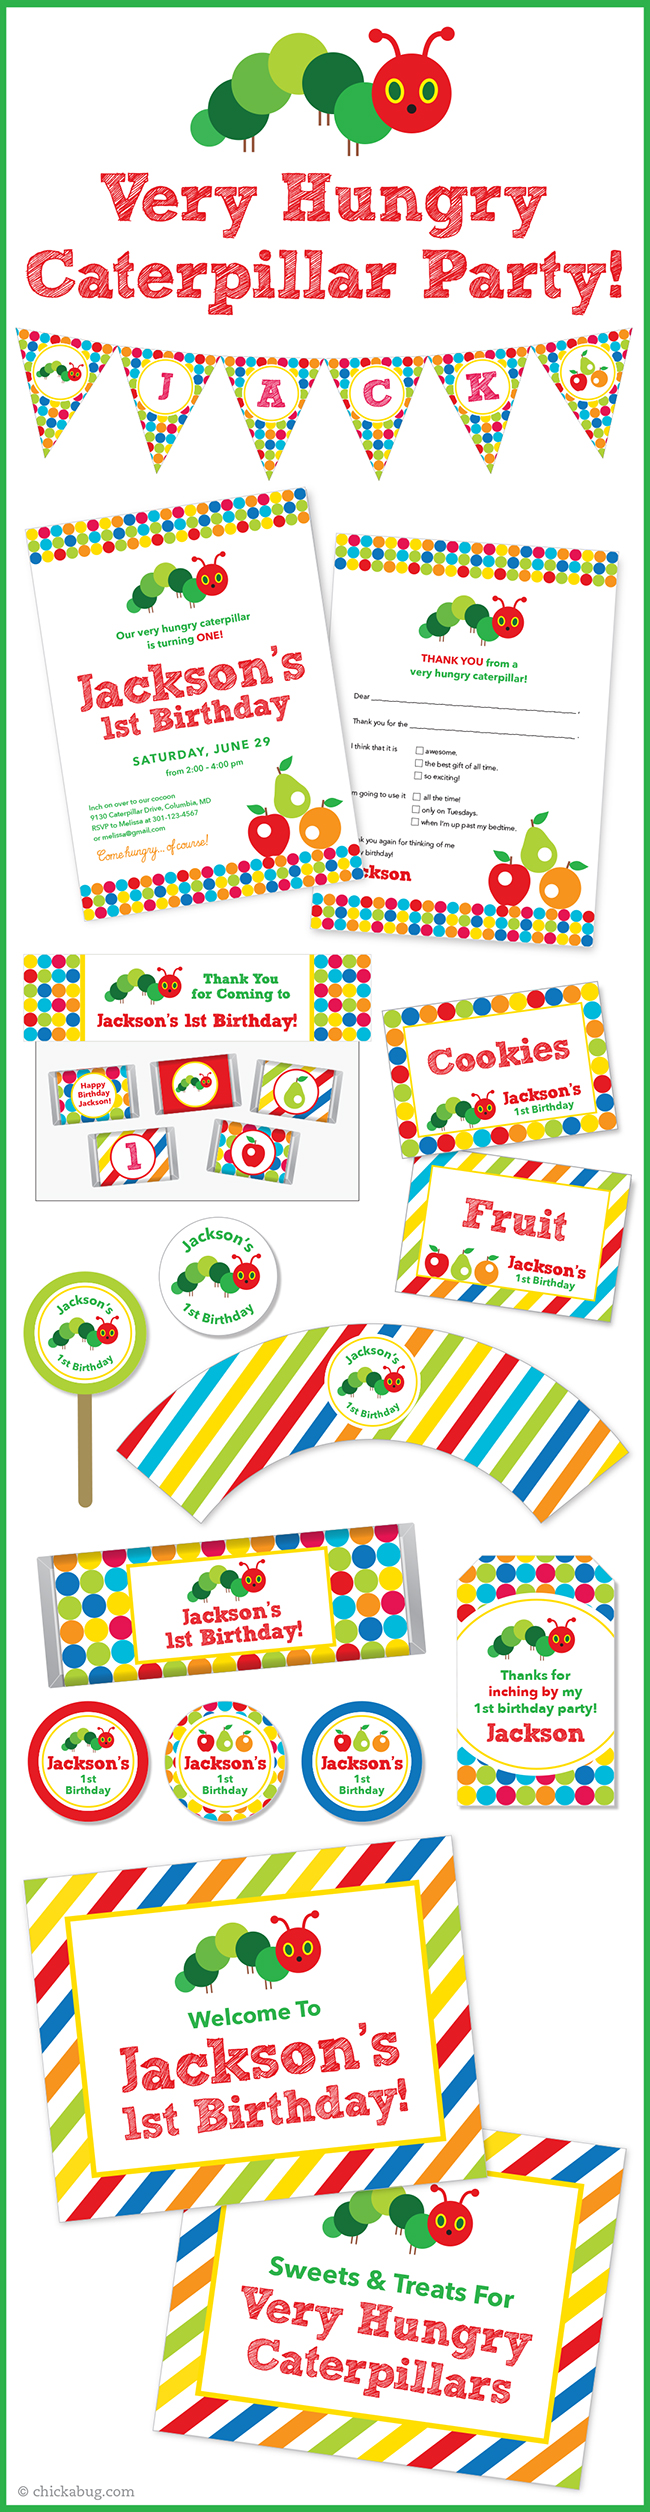 New in the shop: Very Hungry Caterpillar Party | Chickabug